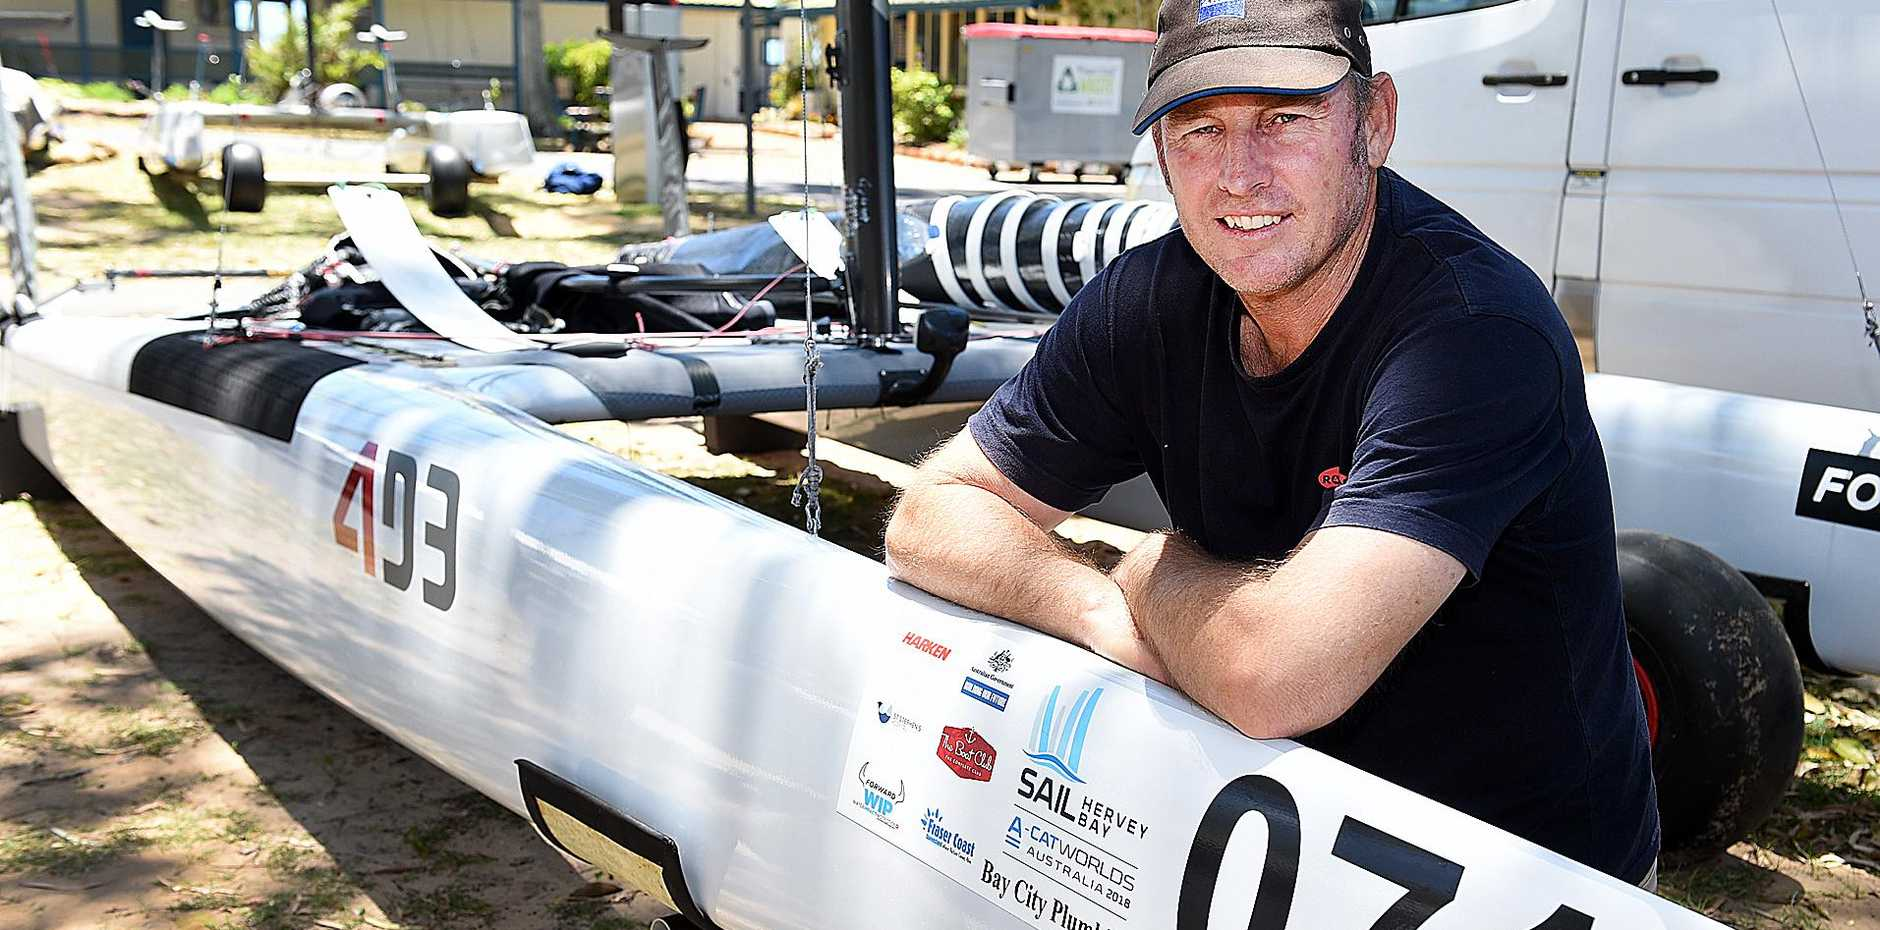 ICON: Australian sailing icon Andrew Landenberger will be among those competing at the Sail Hervey Bay A-Class Catamaran National and World Championships this fortnight. He won a silver medal at the Atlanta Olympic Games in 1996.